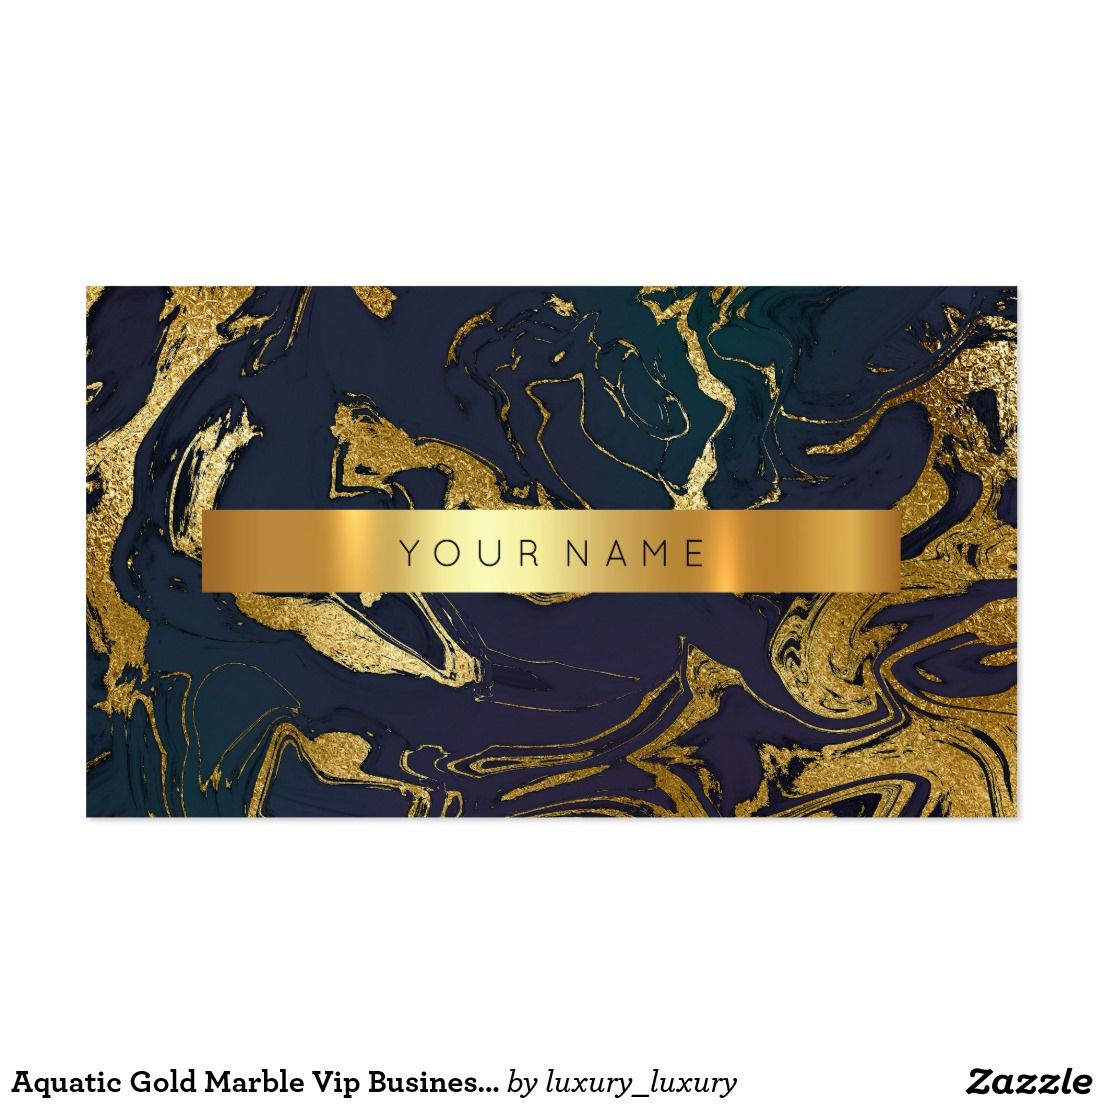 Aquatic Gold Marble Vip Business Card | Gold marble, Business cards ...